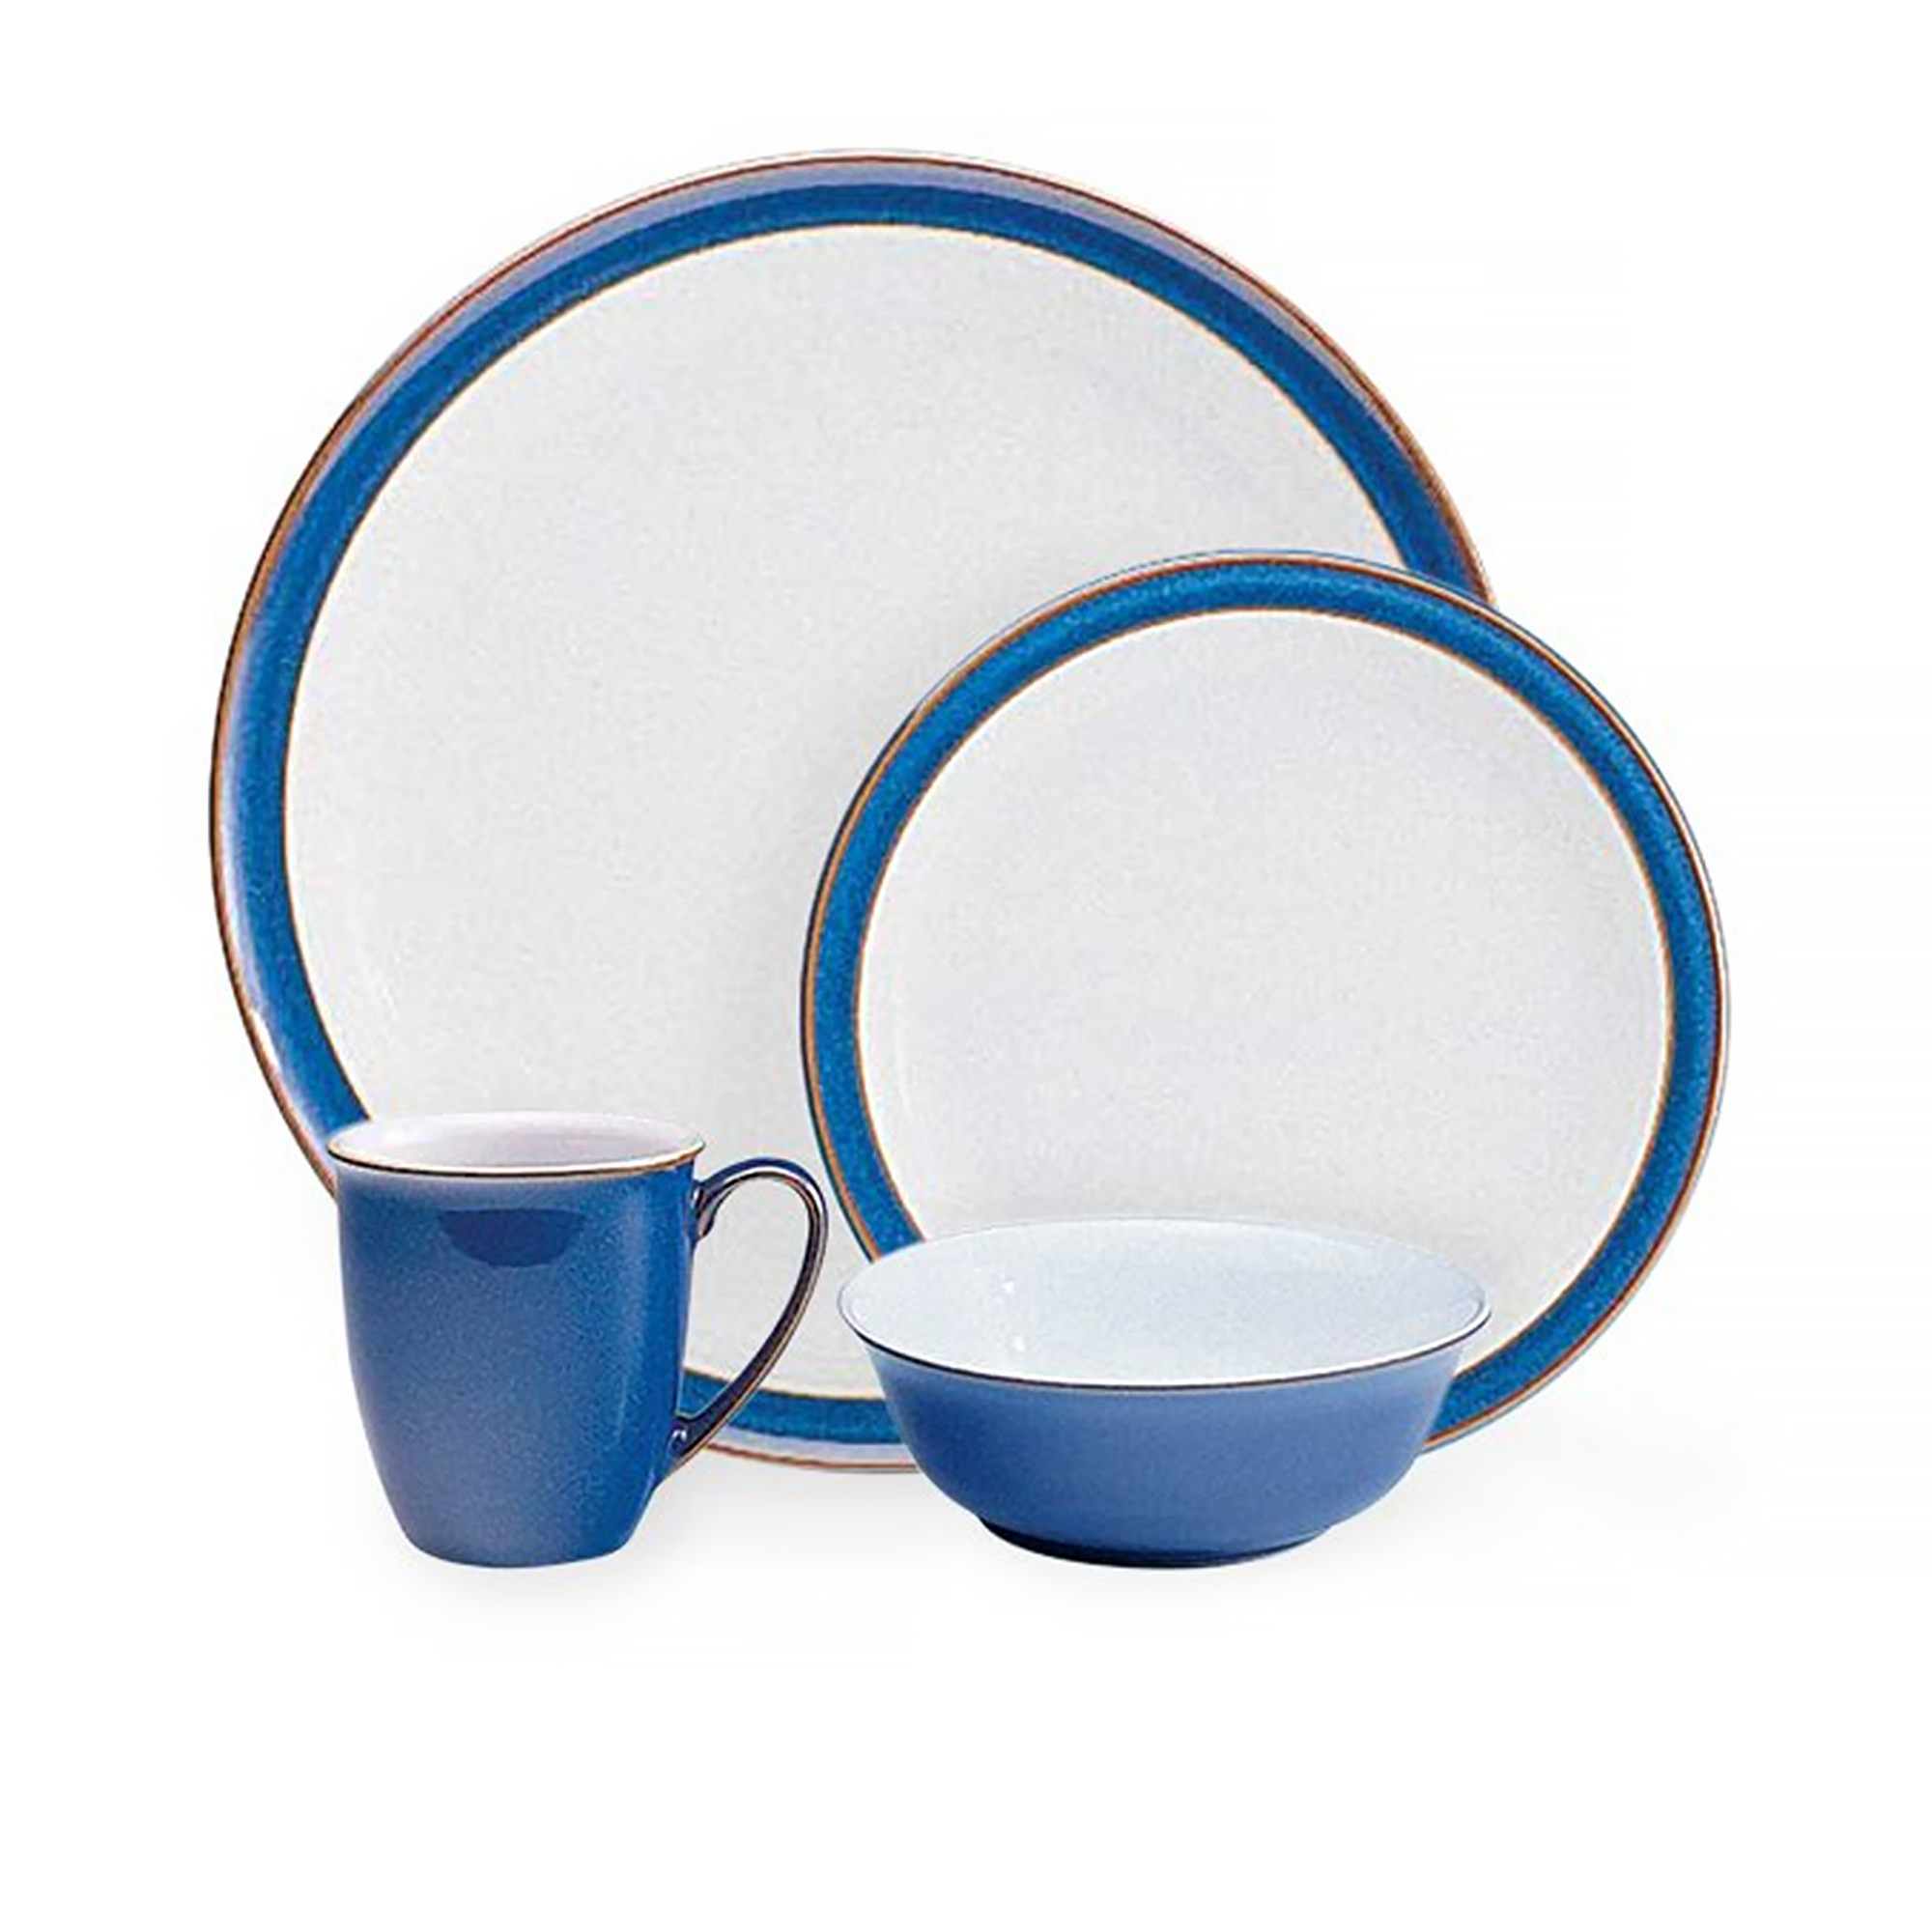 Denby Imperial Blue Dinner Set 16pc